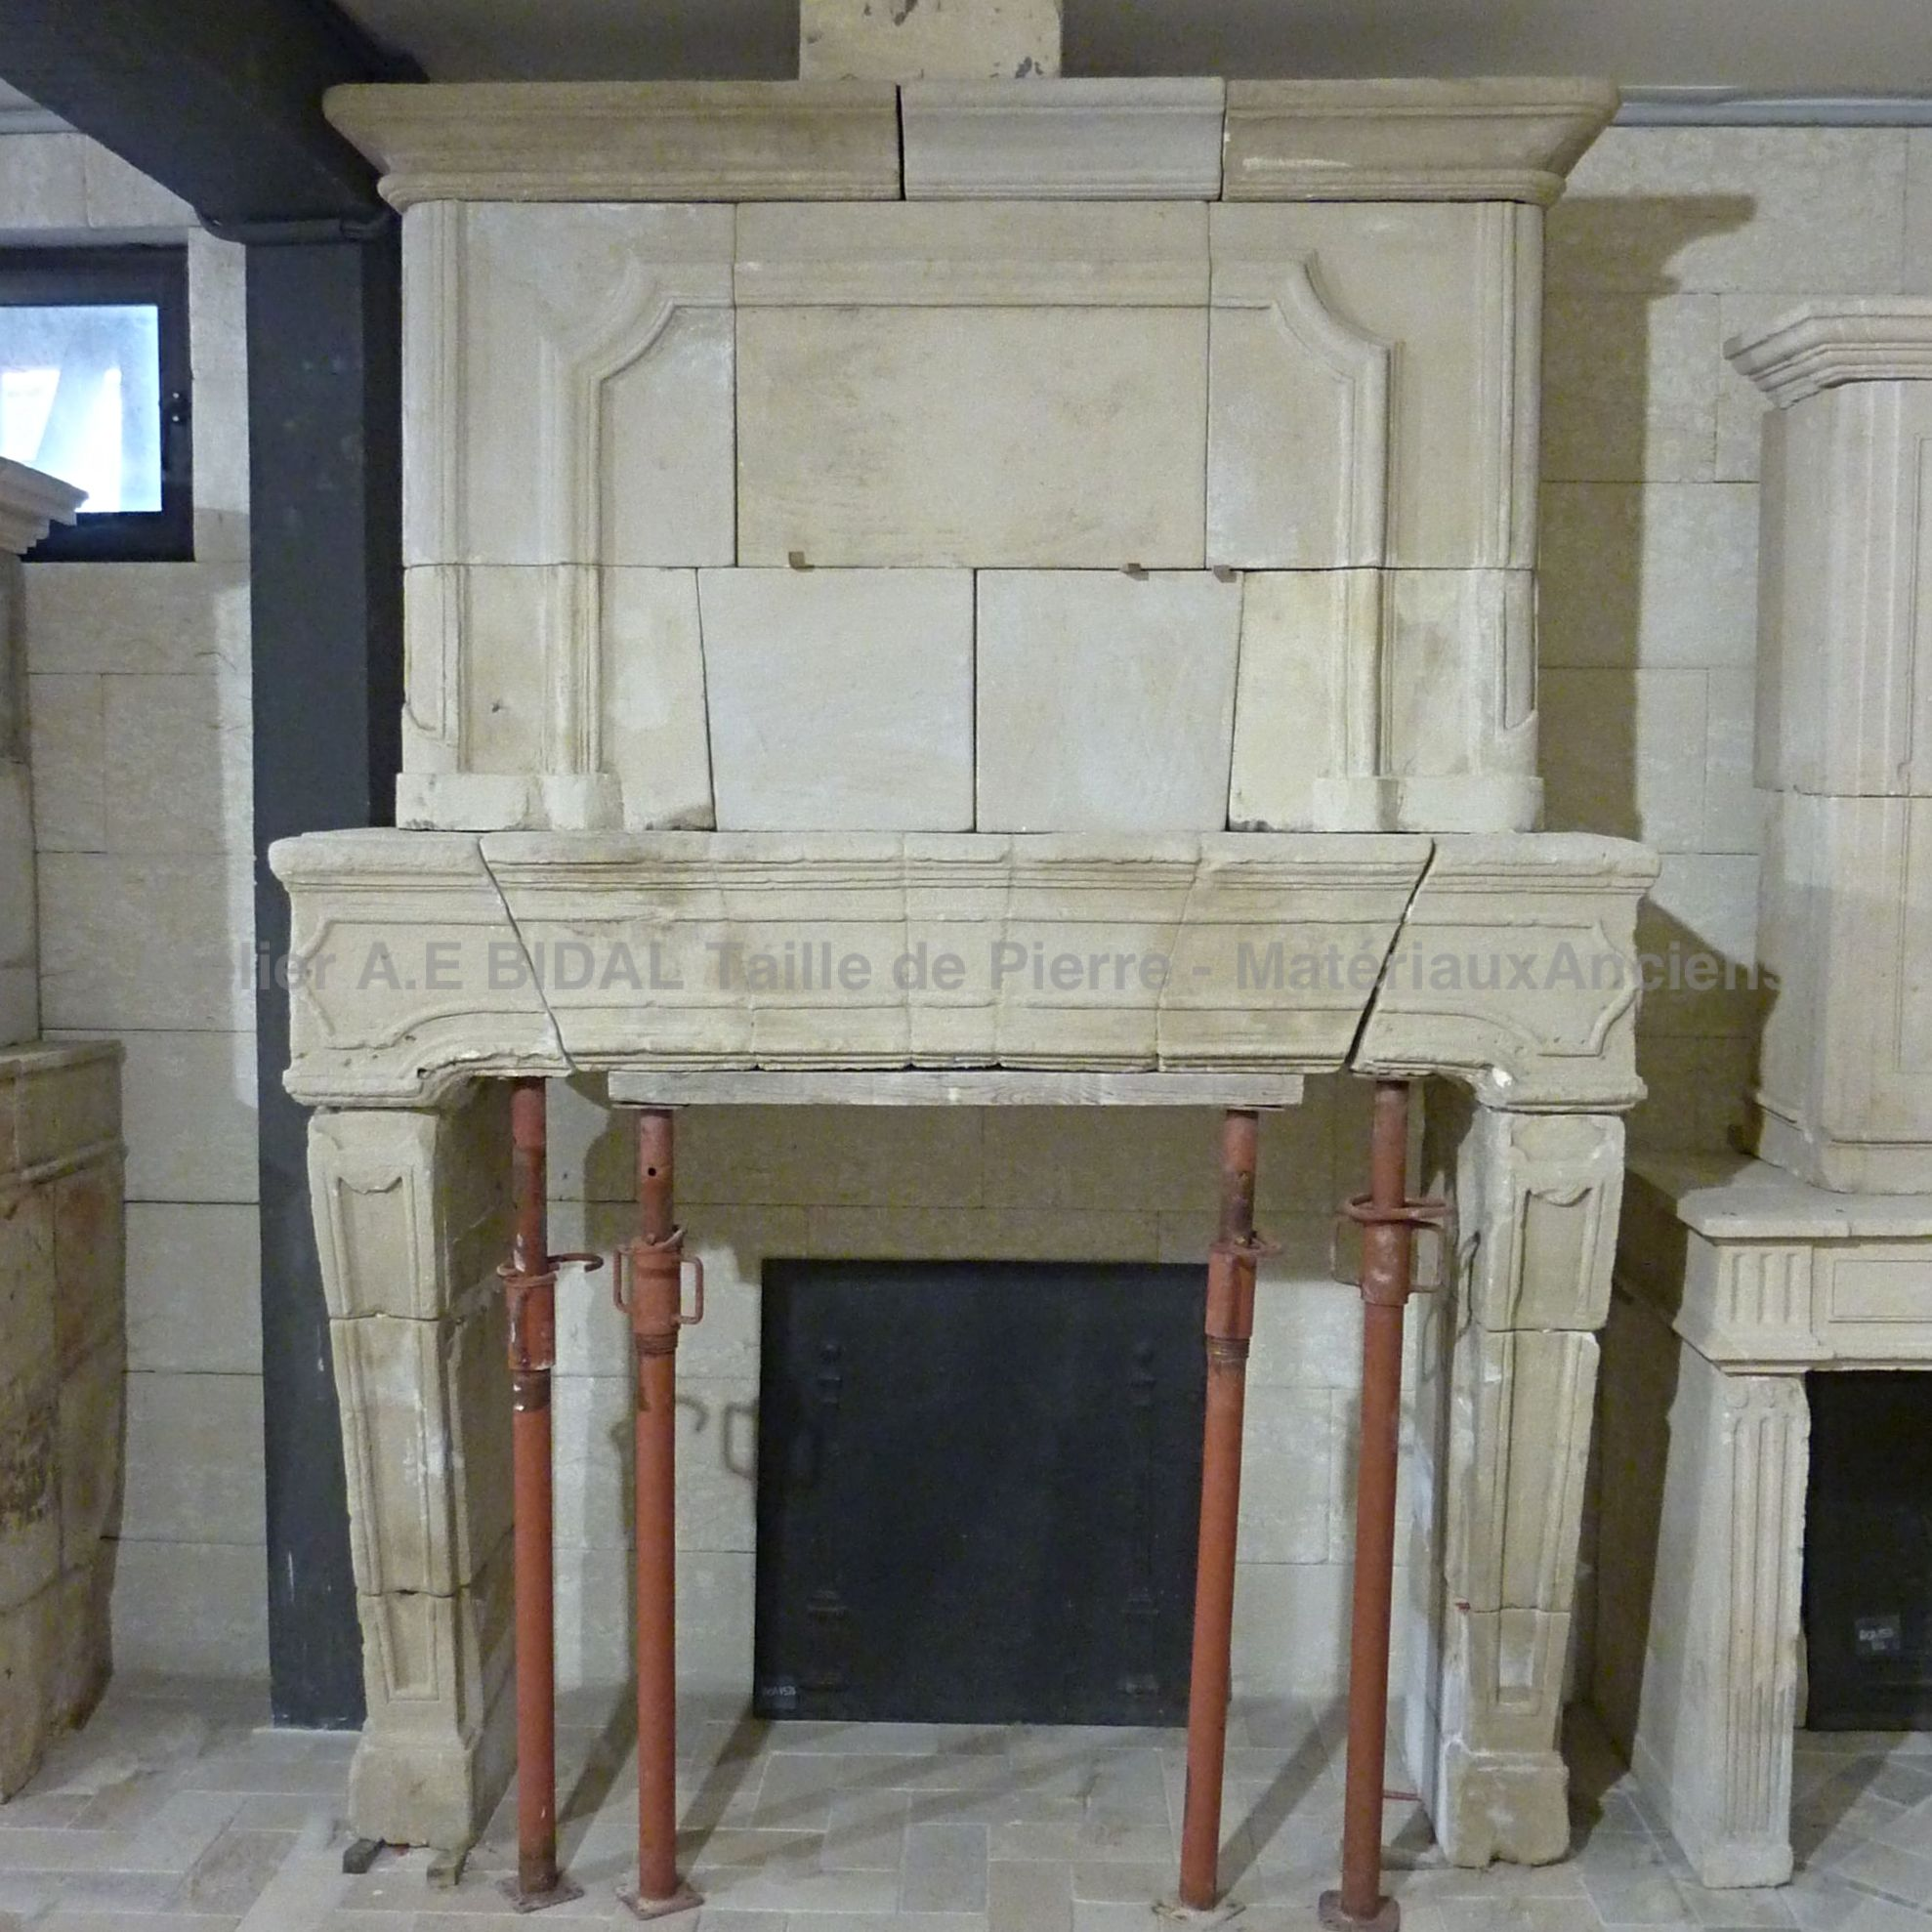 Alain BIDAL: recovery, renovation and sale of antique Louis XIV stone fireplaces.